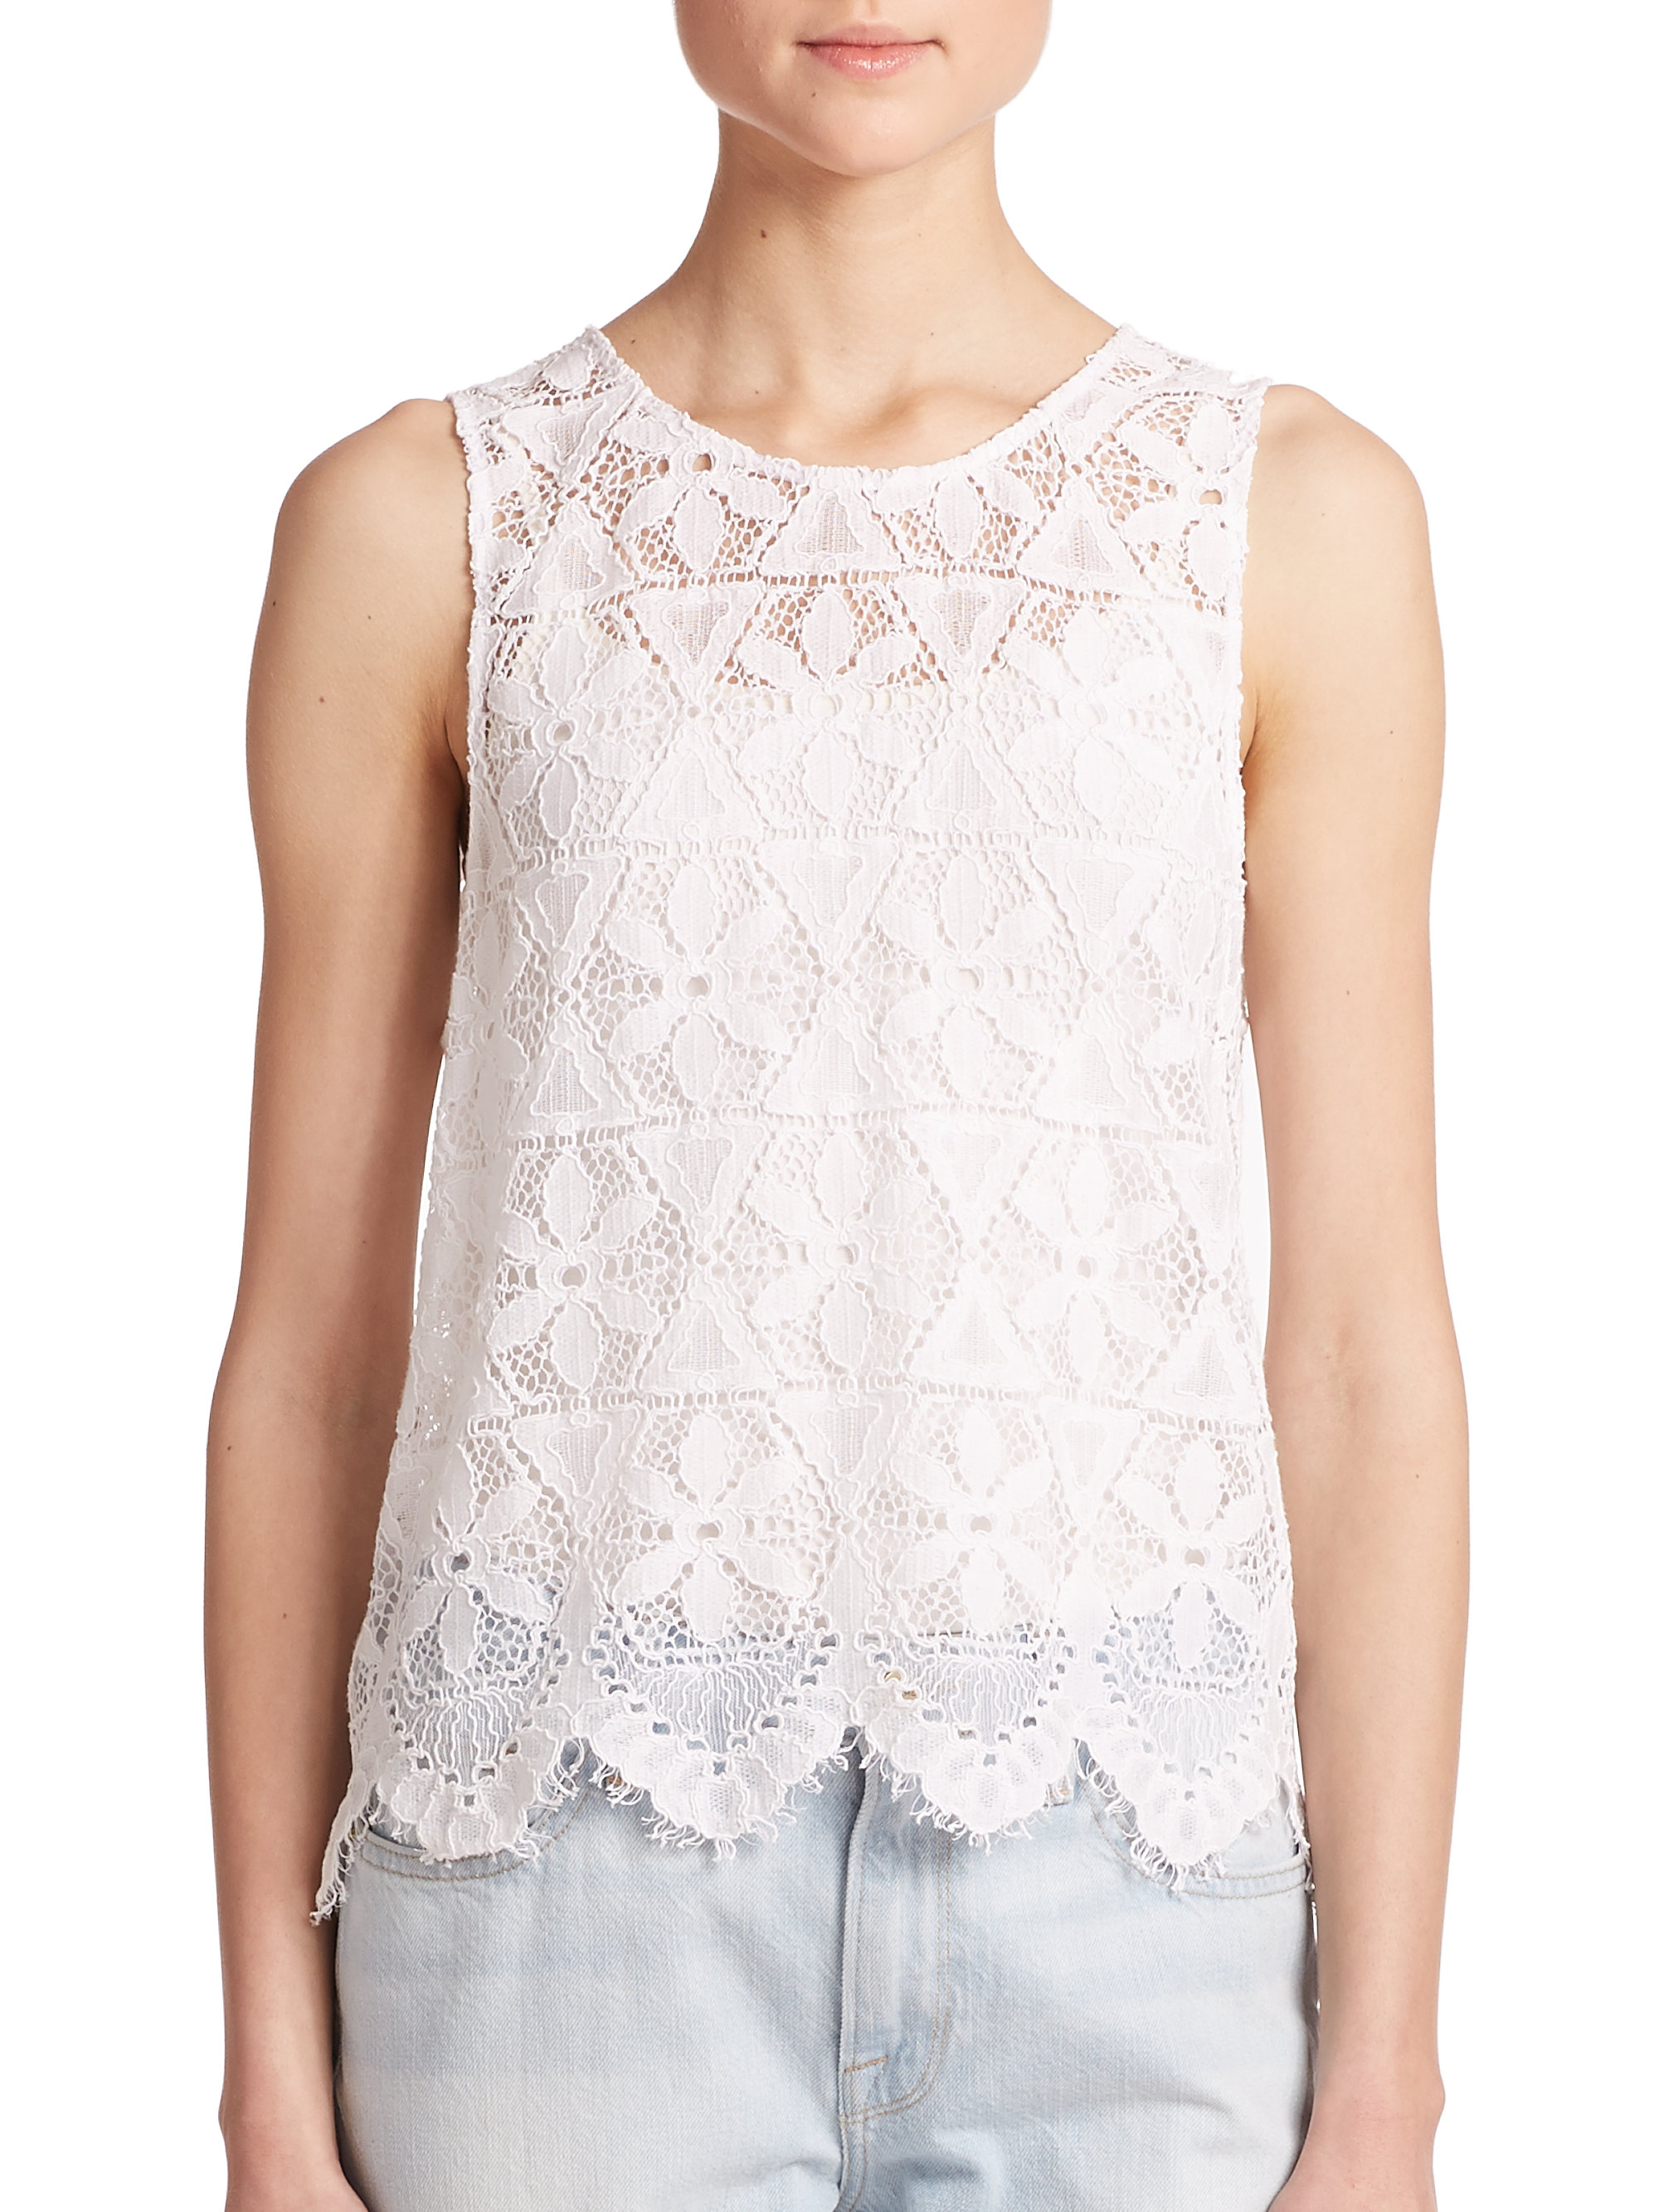 White lace tank top - results from brands Rachel, Scotch And Soda, Karen Kane, products like Women's Plus Lace Trim Tank by Blair, White Size XL, Plus Size Lace Trim Tank Top Pink One Size, Women's Plus Lace Trim Tank by Blair, White Size XL, Clothing.